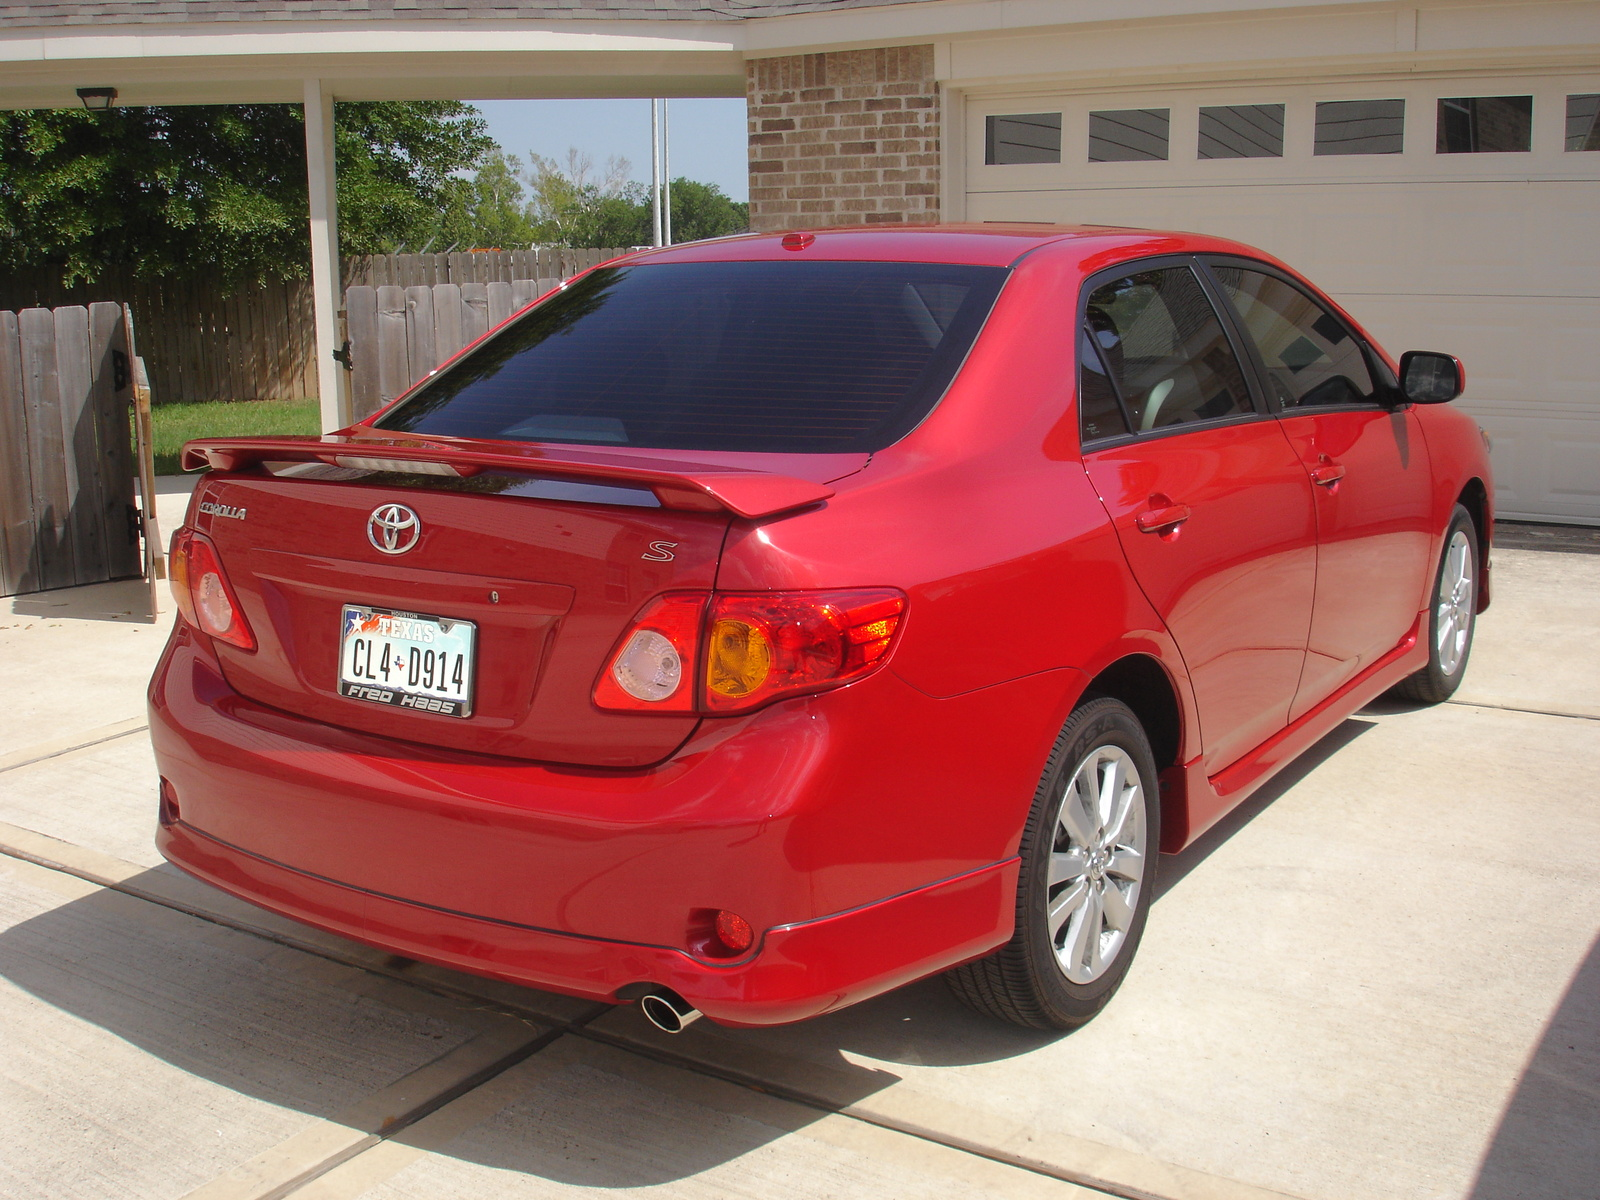 Toyota Corolla red #1